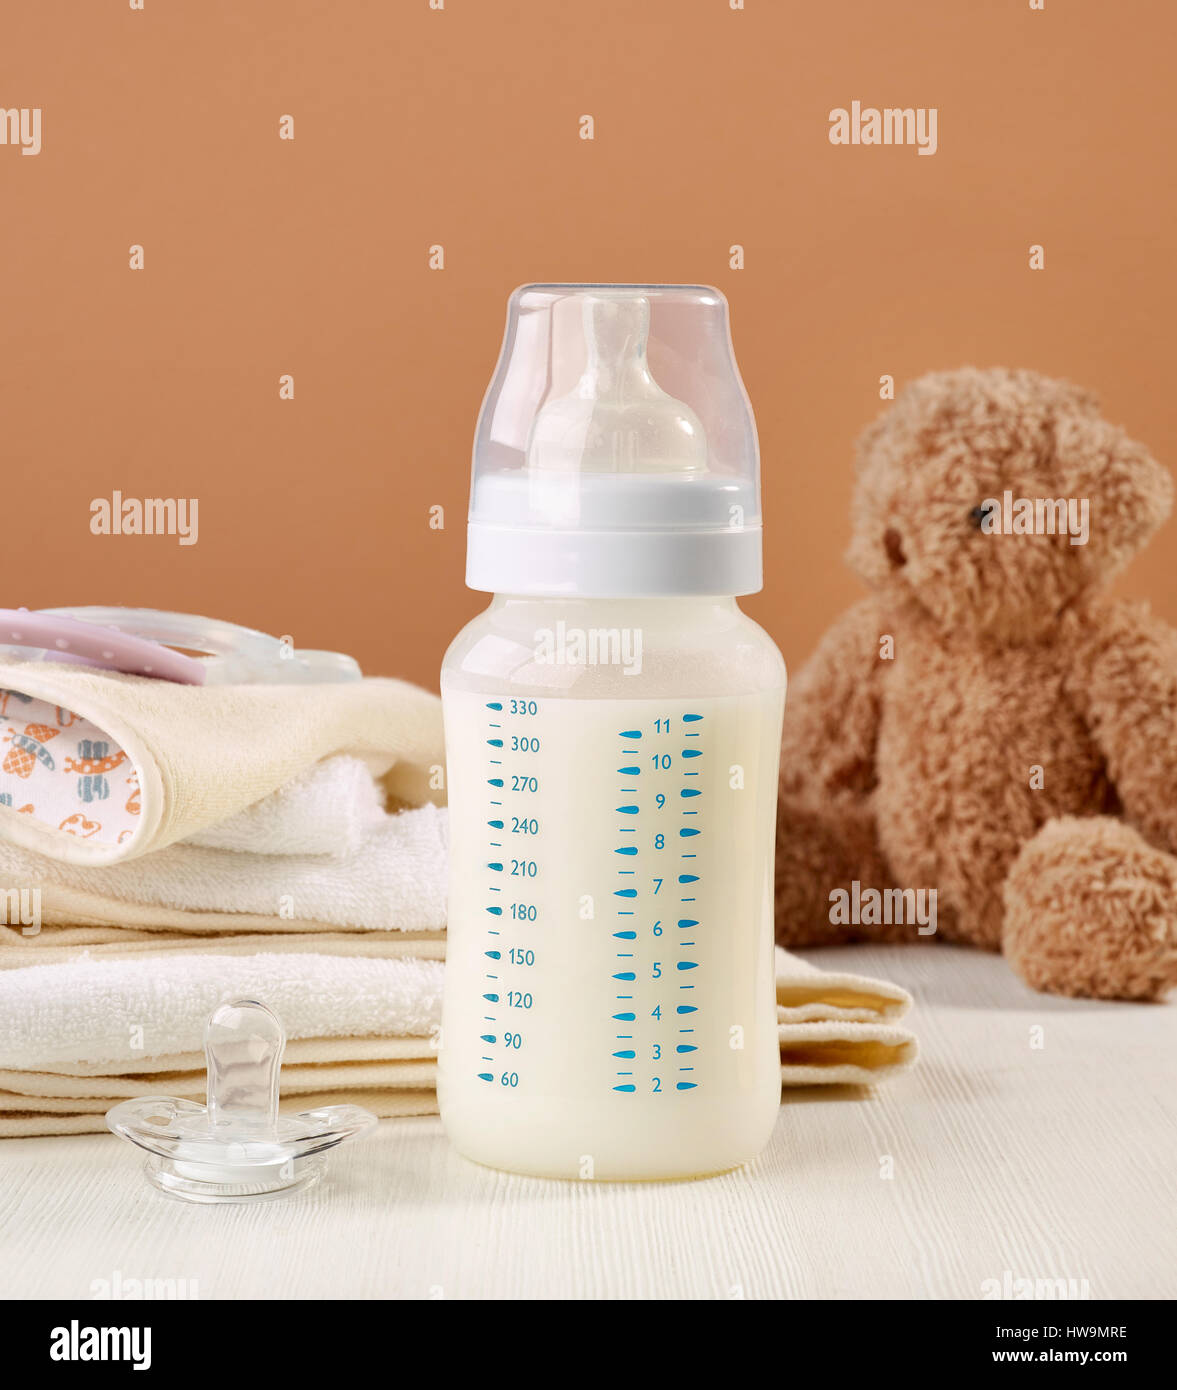 Tremendous Baby Milk Bottle On White Wooden Table Stock Photo Home Interior And Landscaping Spoatsignezvosmurscom